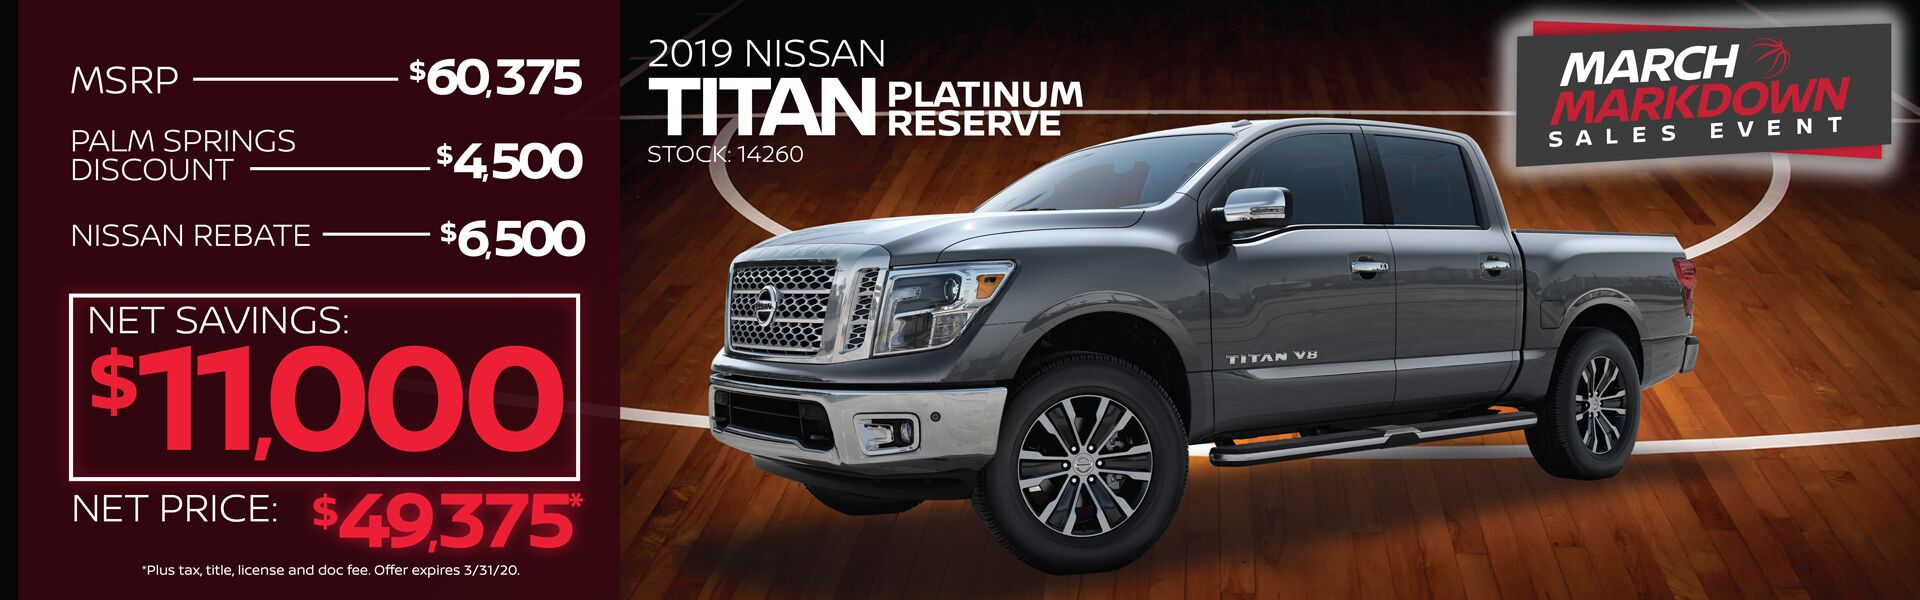 2019 Nissan Titan Net Savings $11,000